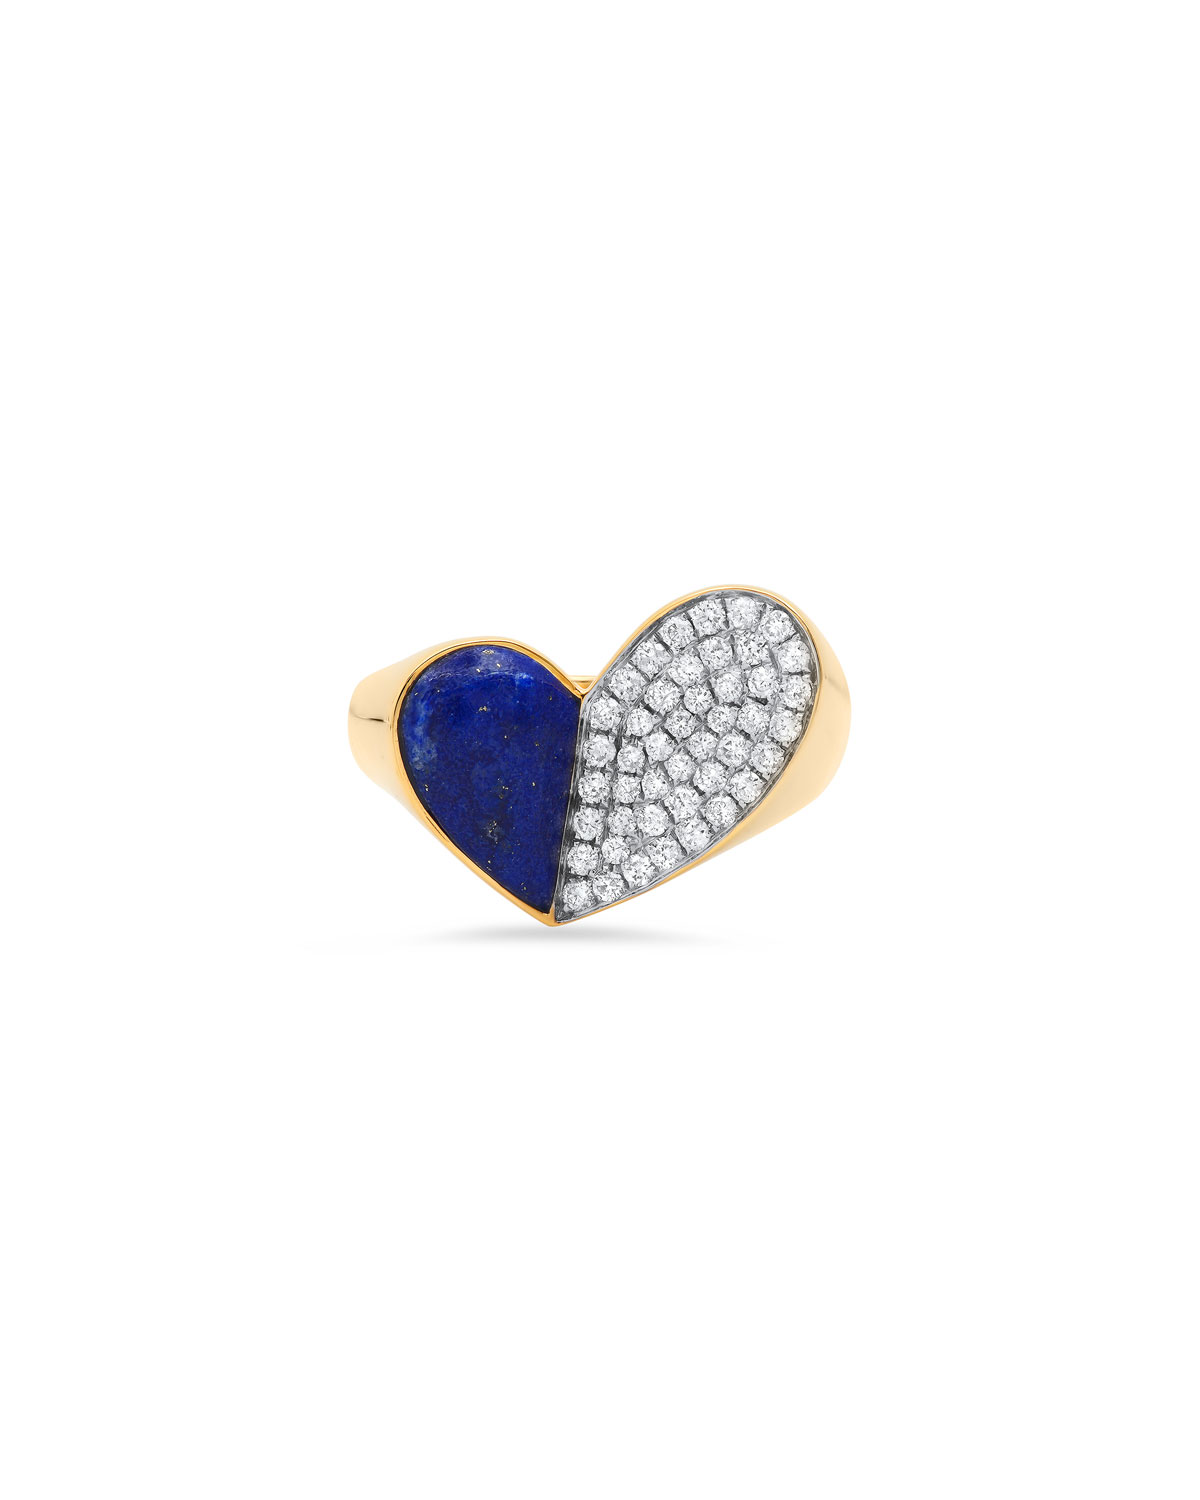 18K Yellow Gold Heart of Penacho Ring with Lapis